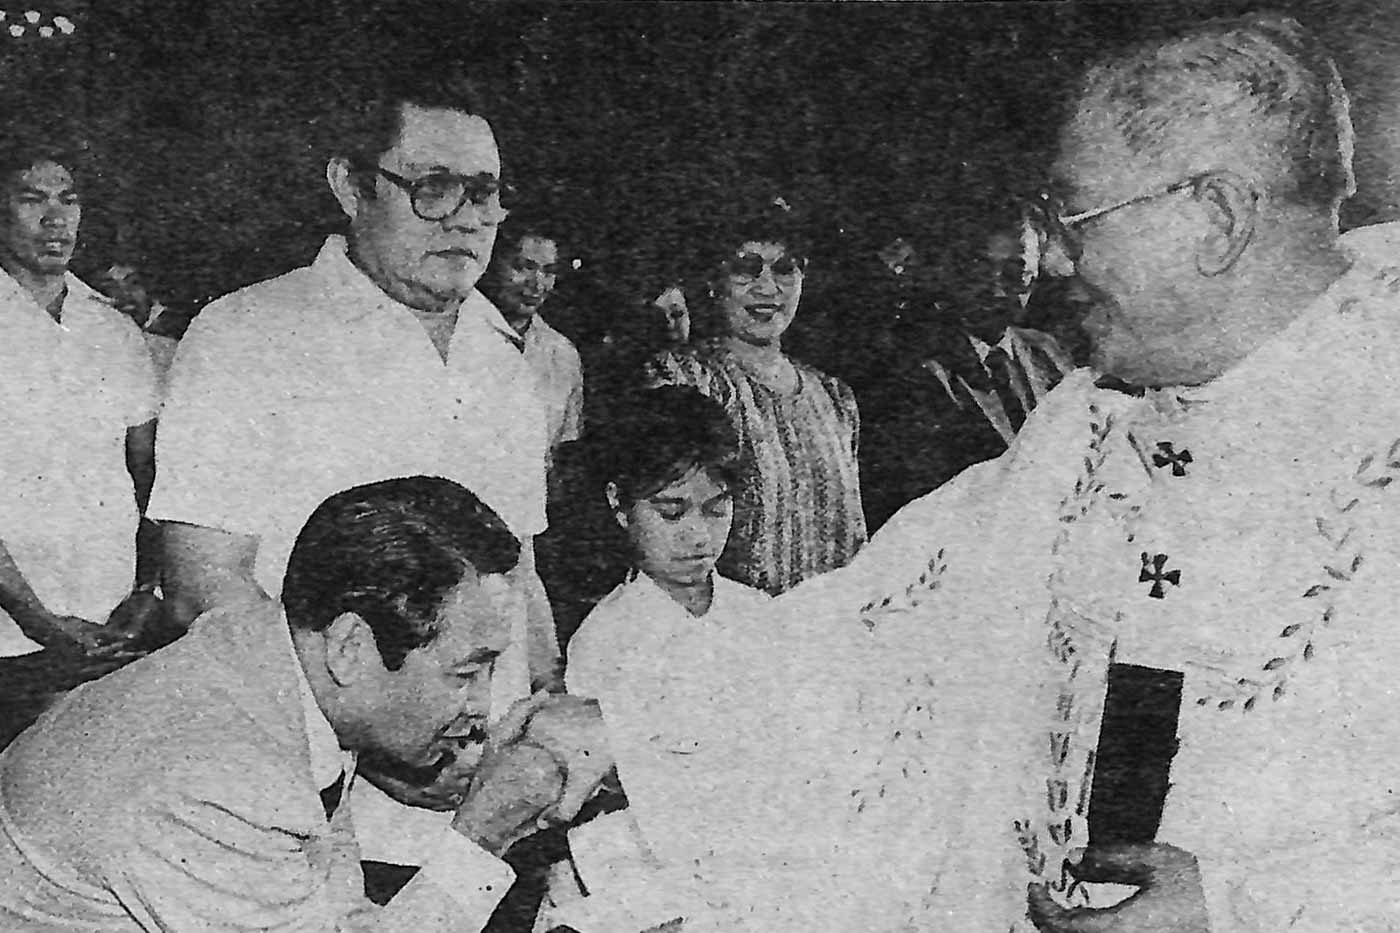 INFLUENTIAL LEADER. Comelec chairman Victorio Savellano kisses the ring of Jaime Cardinal Sin during a Mass at the Manila Cathedral. Photo from the Presidential Museum and Library